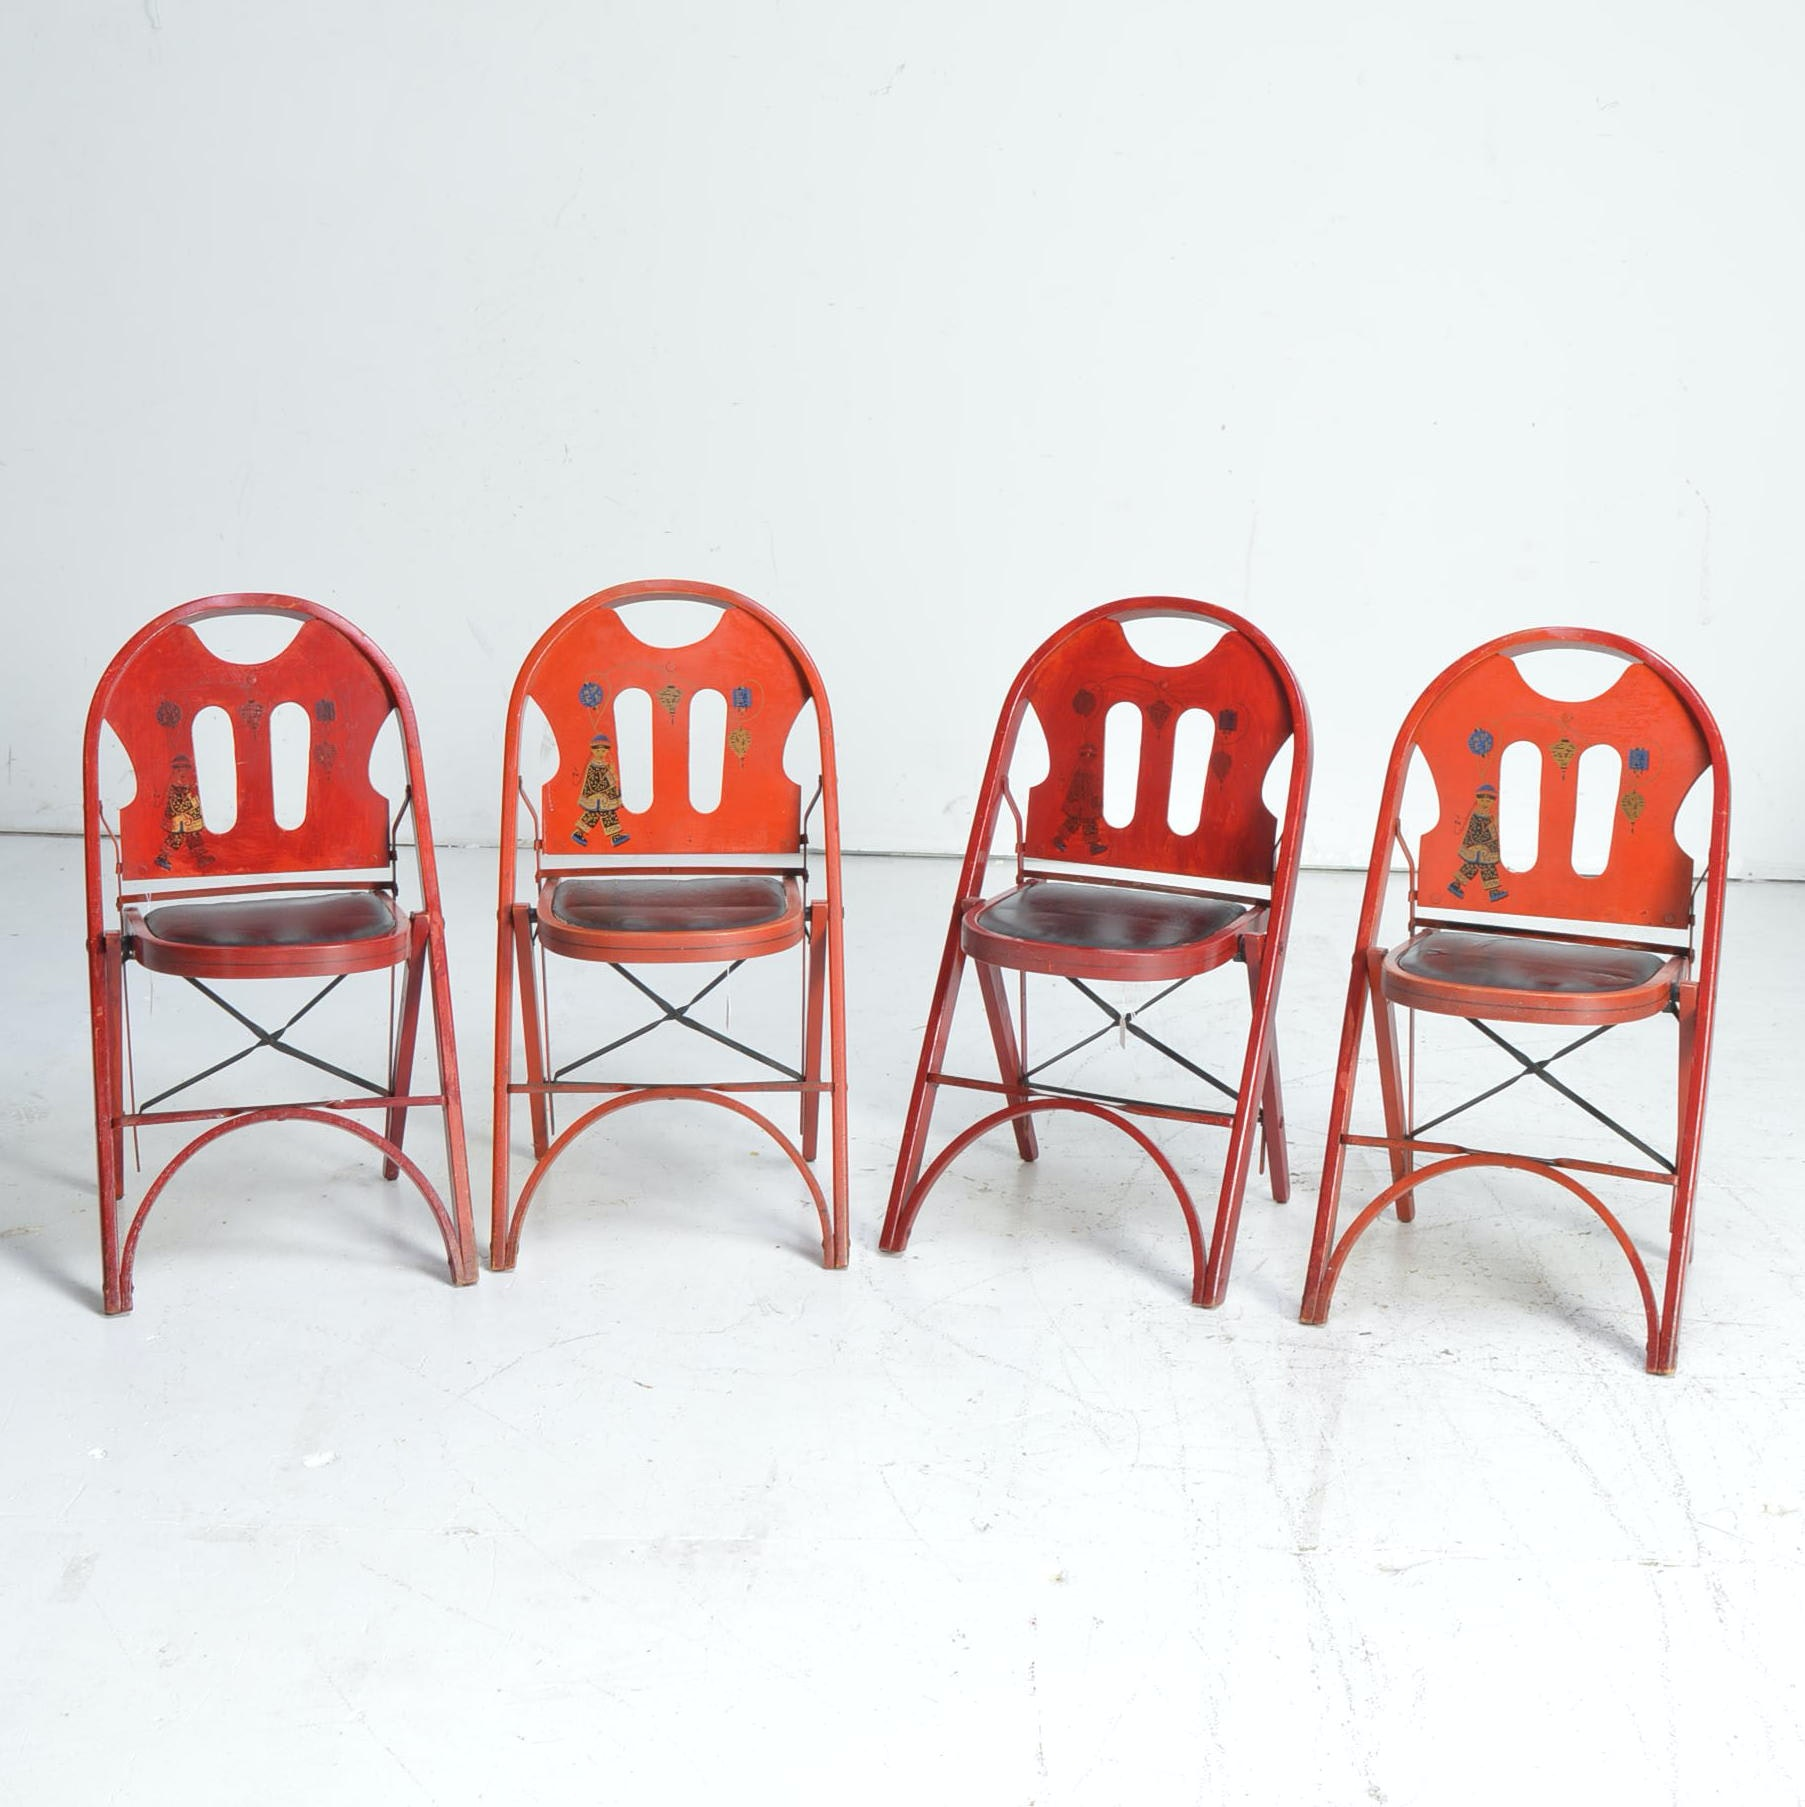 Vintage Folding Chairs by The Louis Rastetter & Sons